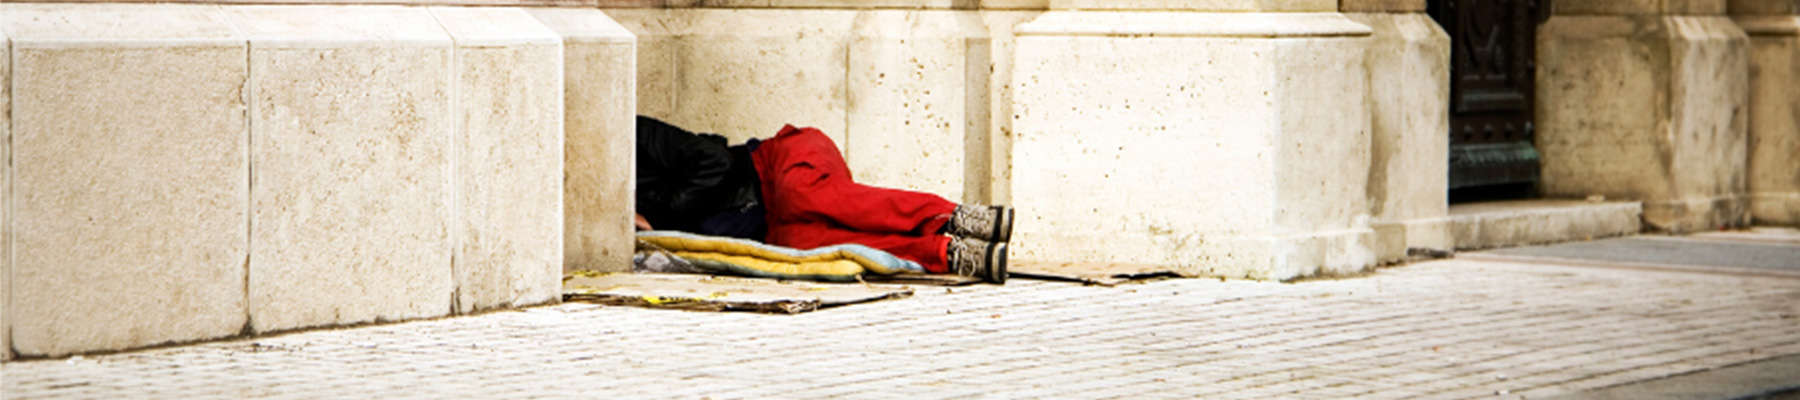 Health on The Streets. Man sleeping rough